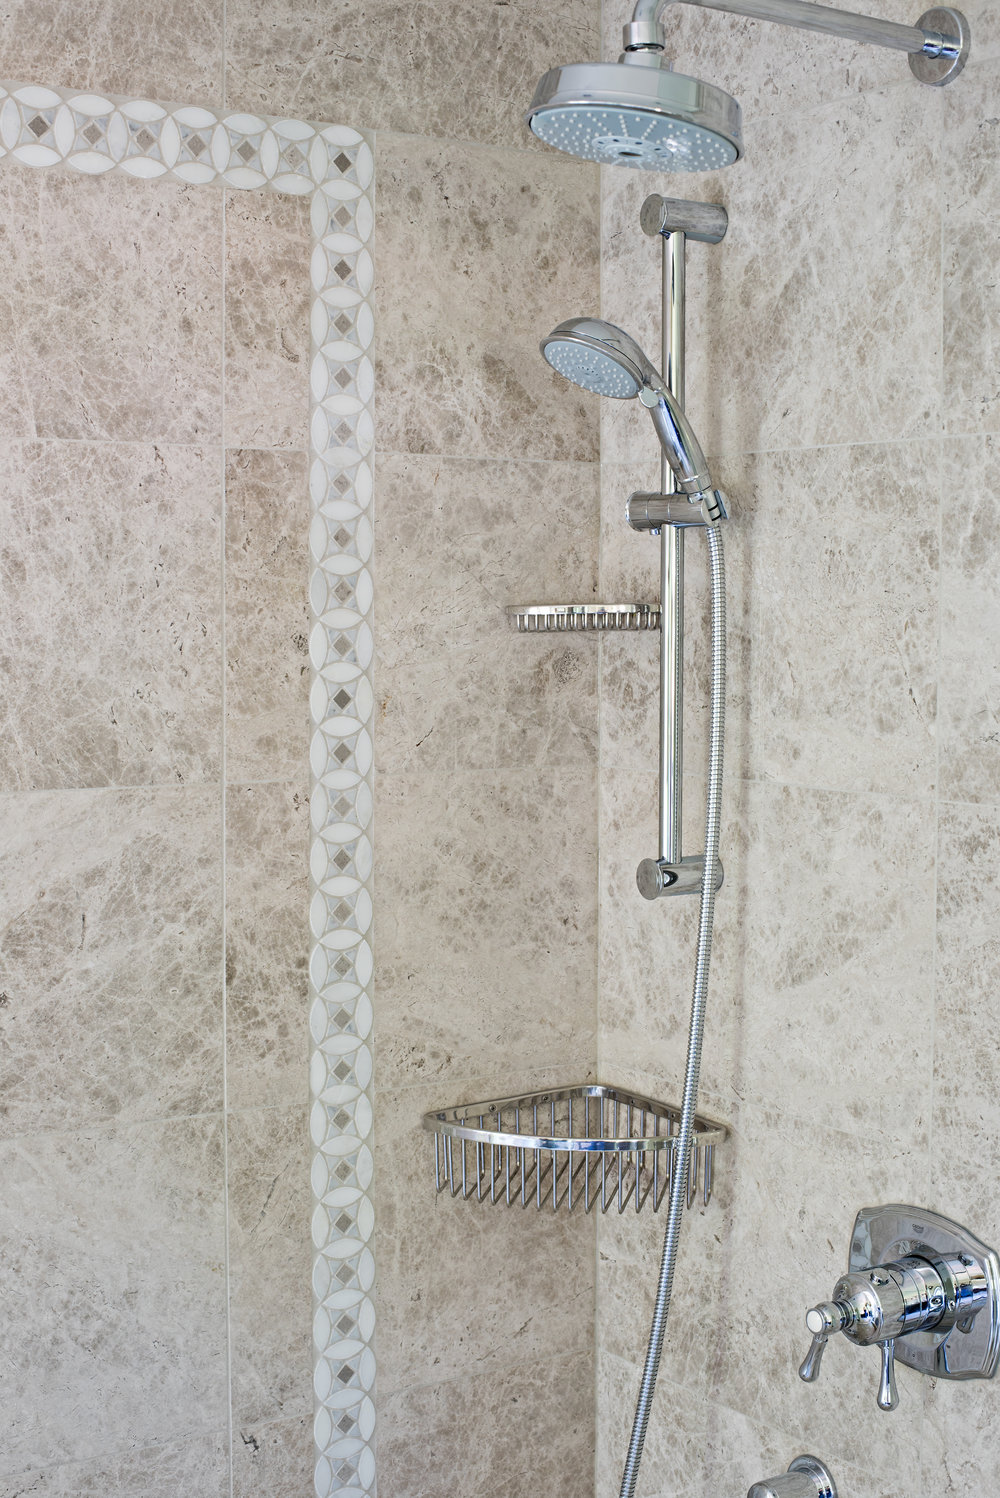 Bahtroom Shower Head.jpg